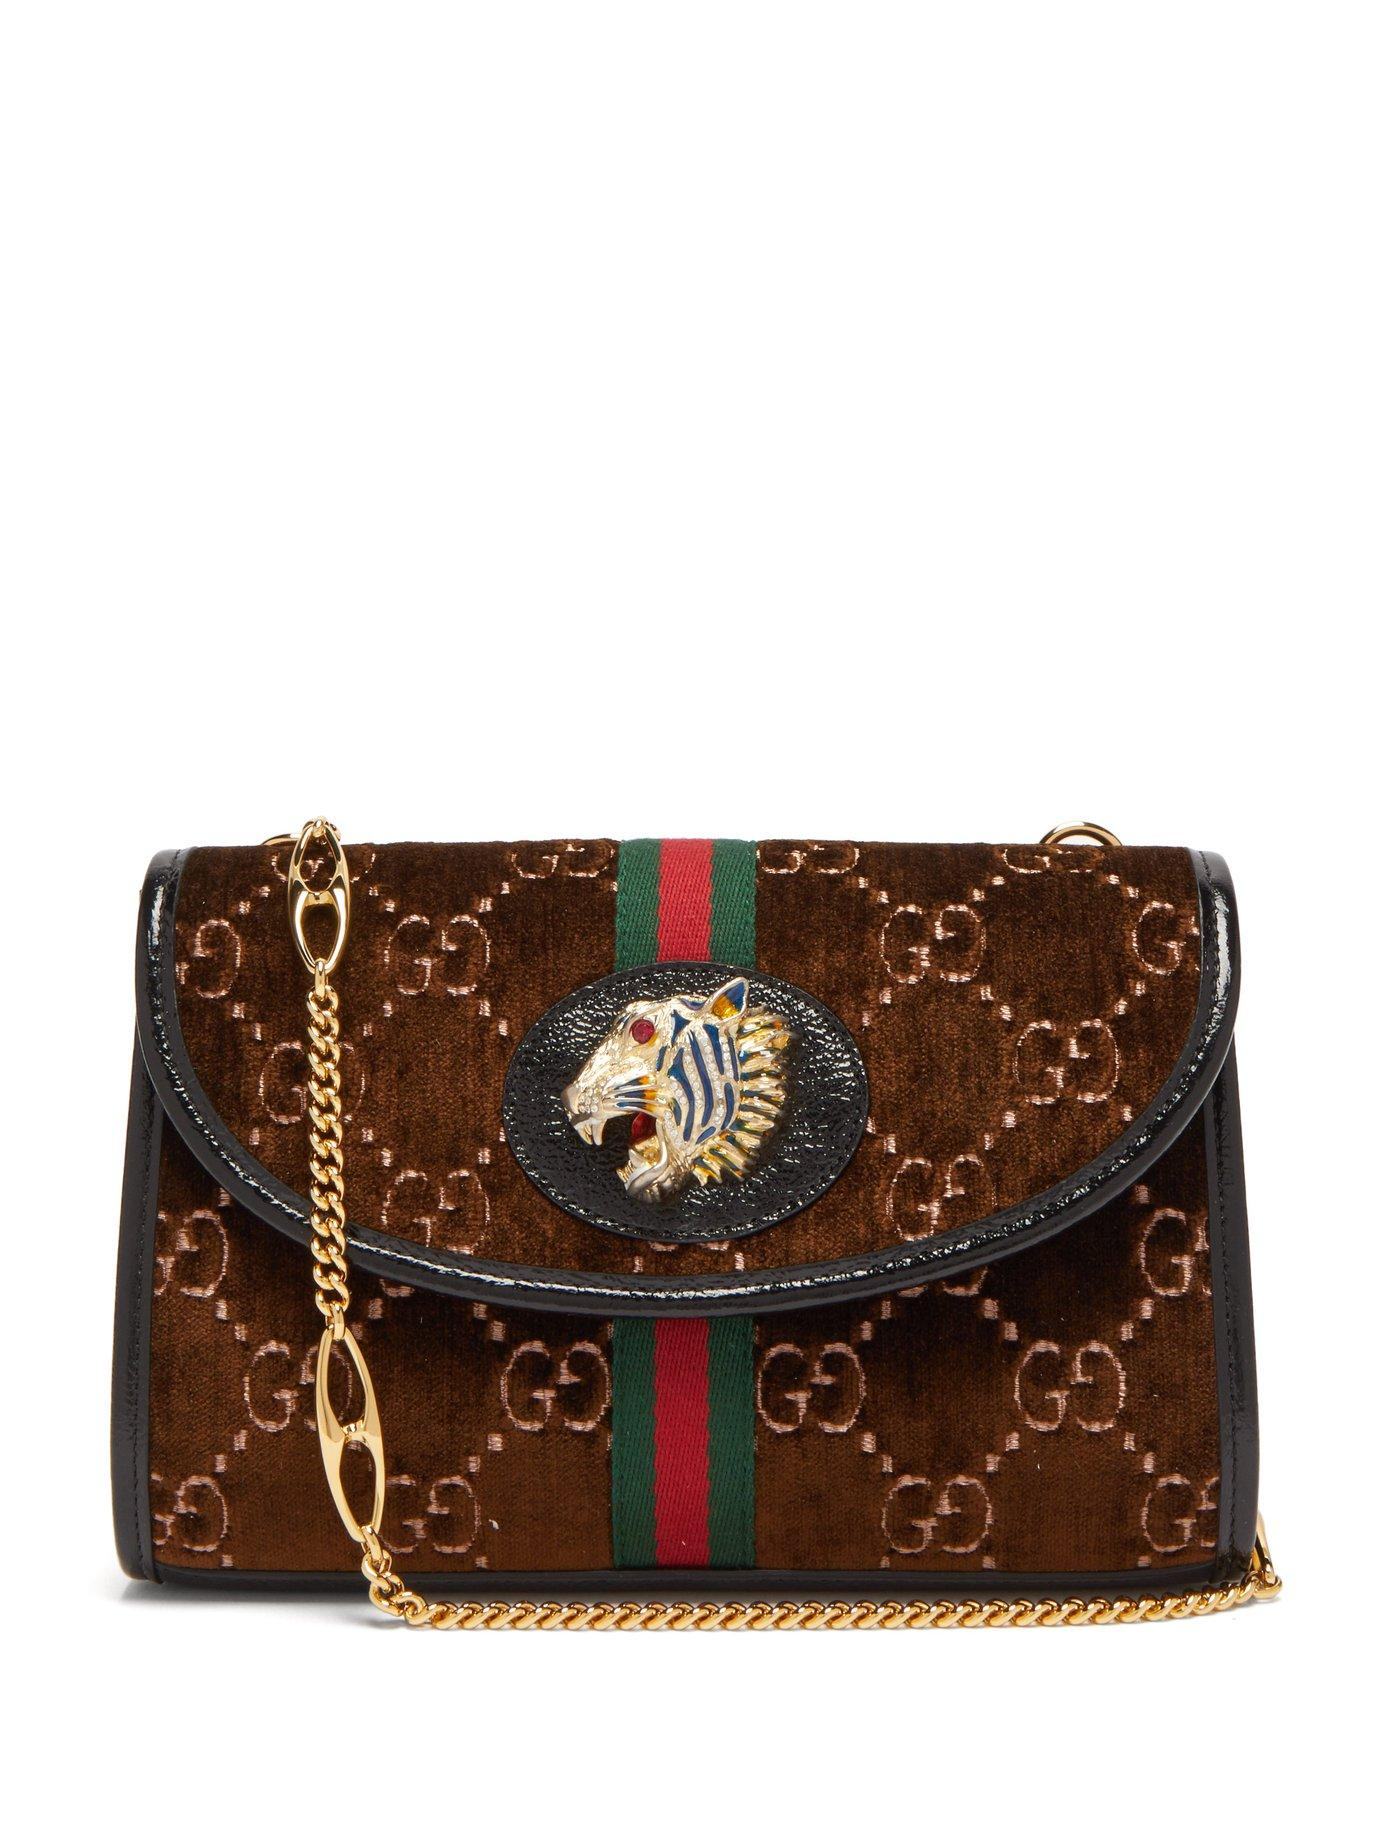 c3c1cf5169e Lyst - Gucci Rajah Gg Monogram Velvet Cross Body Bag in Brown